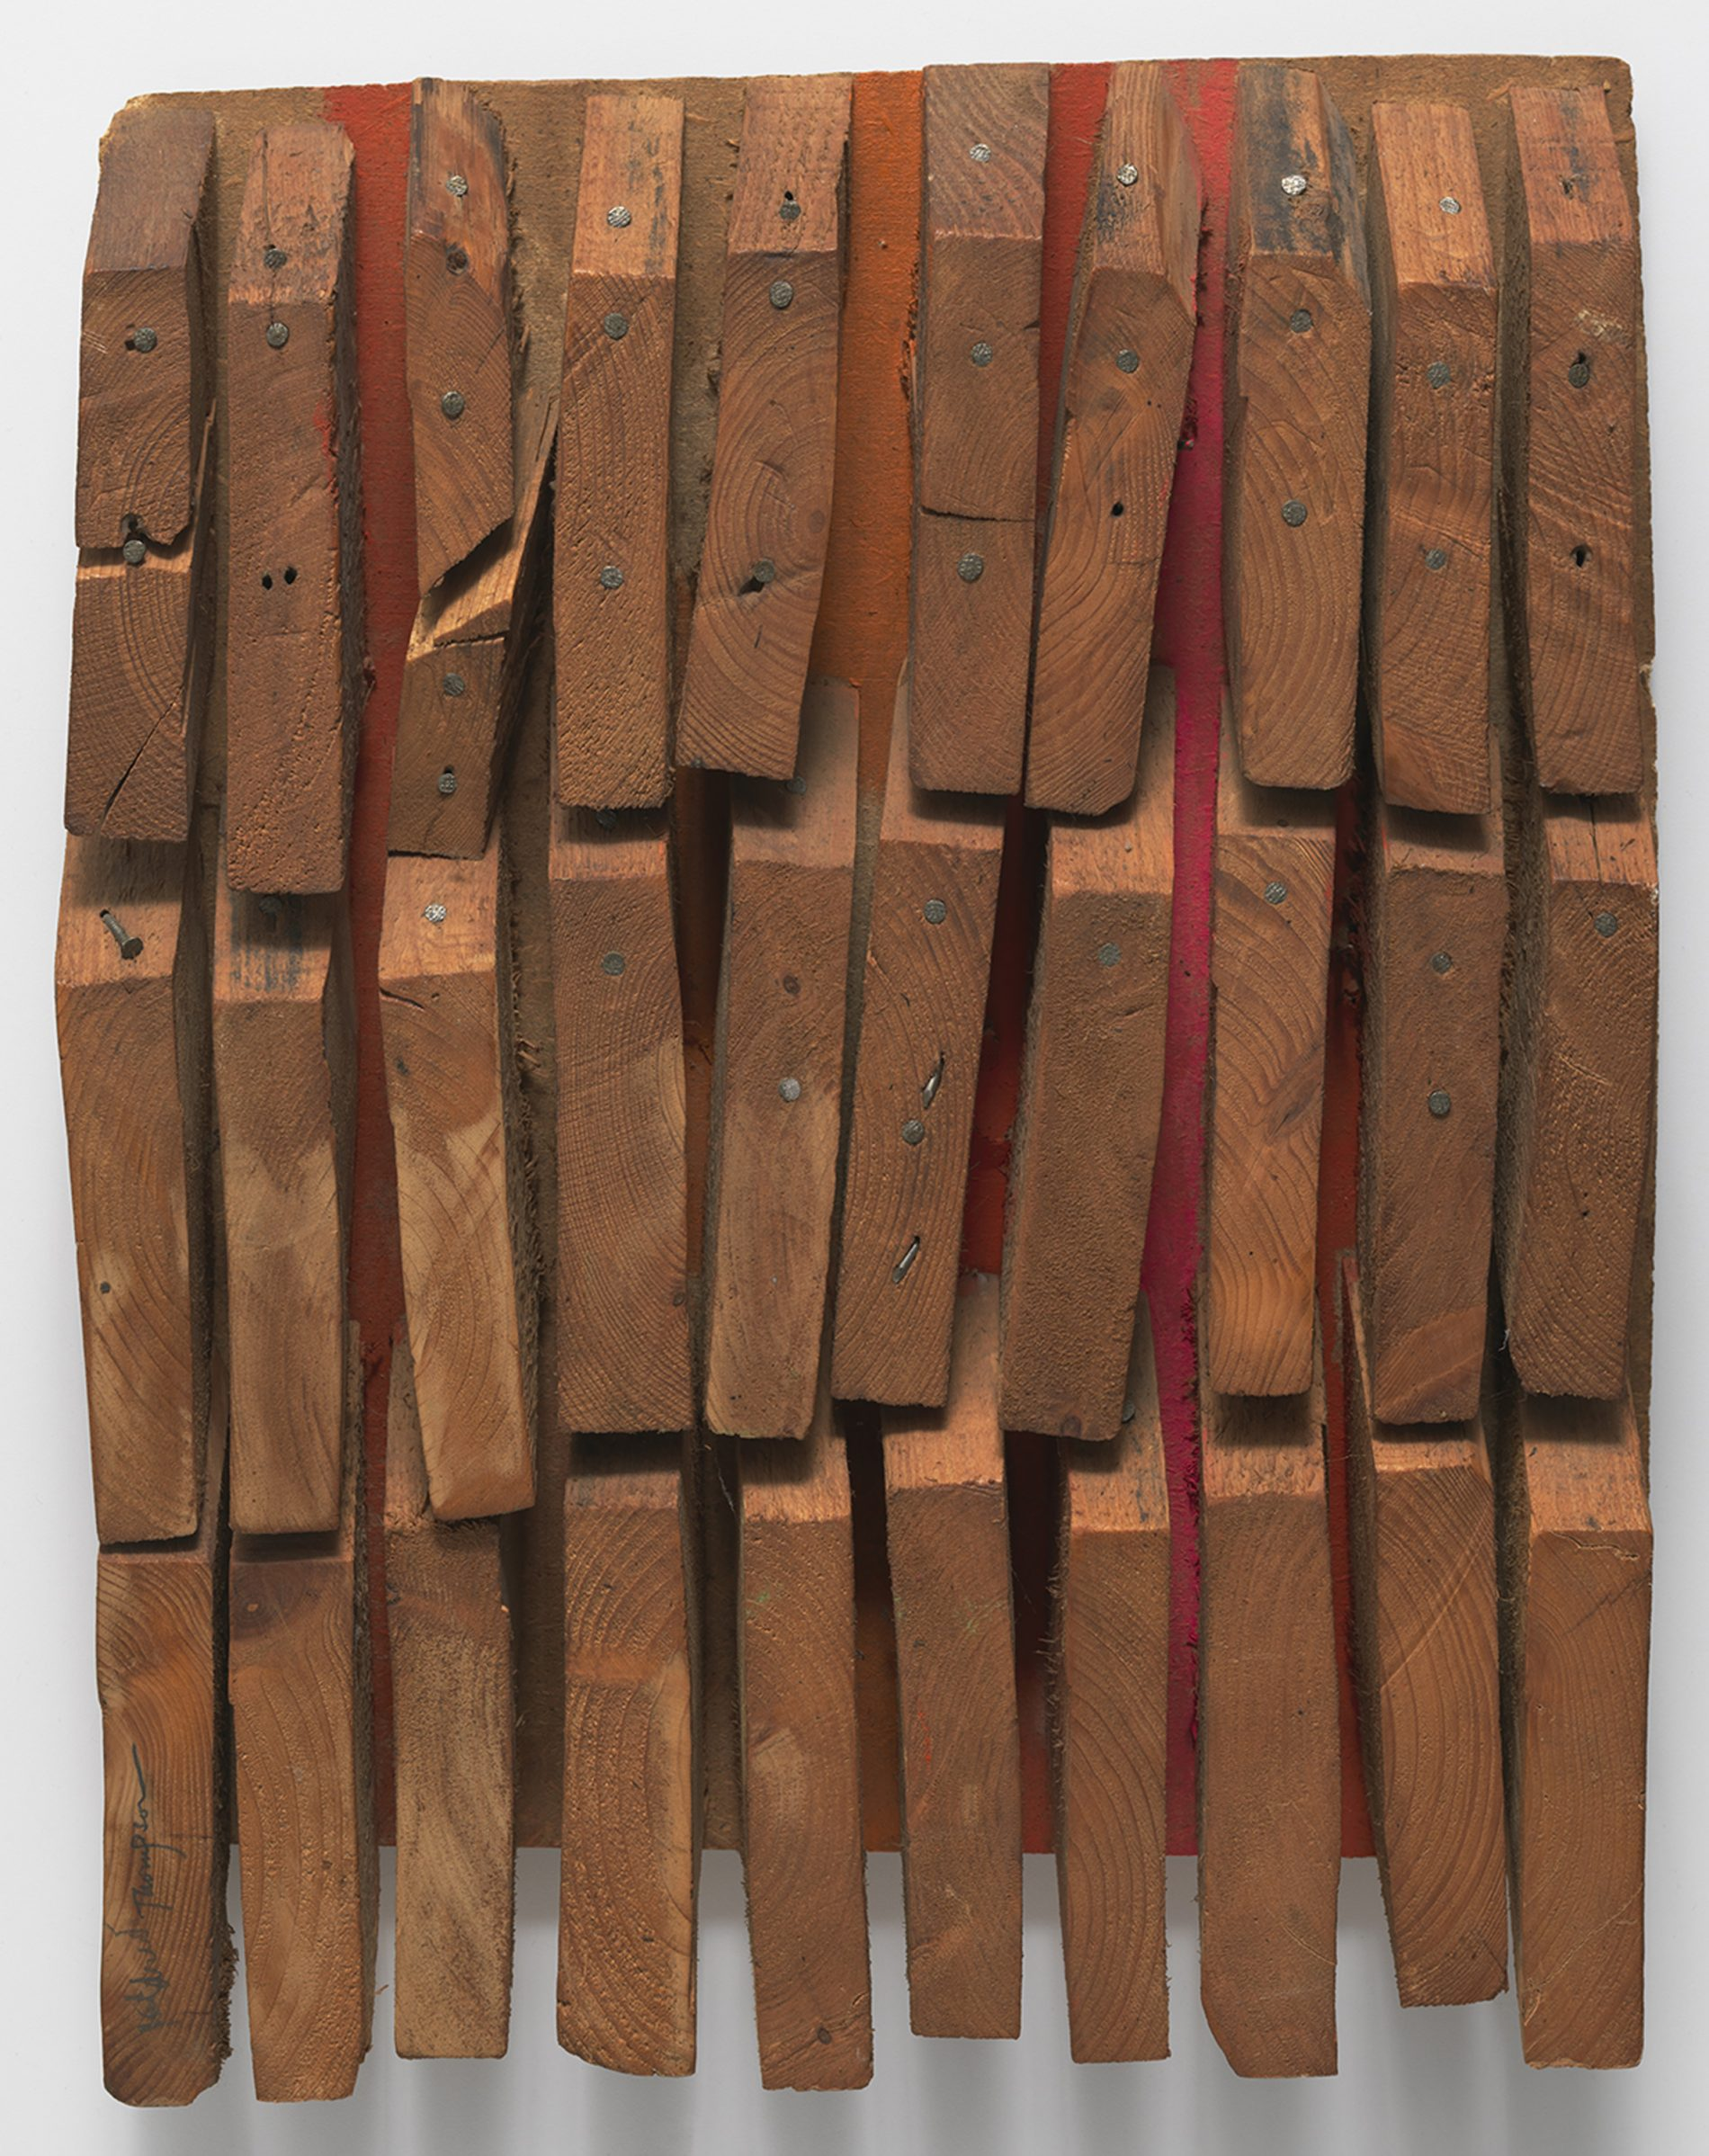 Mildred Thompson Wood Picture , c. 1967 Signed lower left Found wood and nails 20.5 x 15.75 x 2.75 inches (52.1 x 40 x 7 cm) © Estate of Mildred Thompson Courtesy Galerie Lelong & Co. , New York